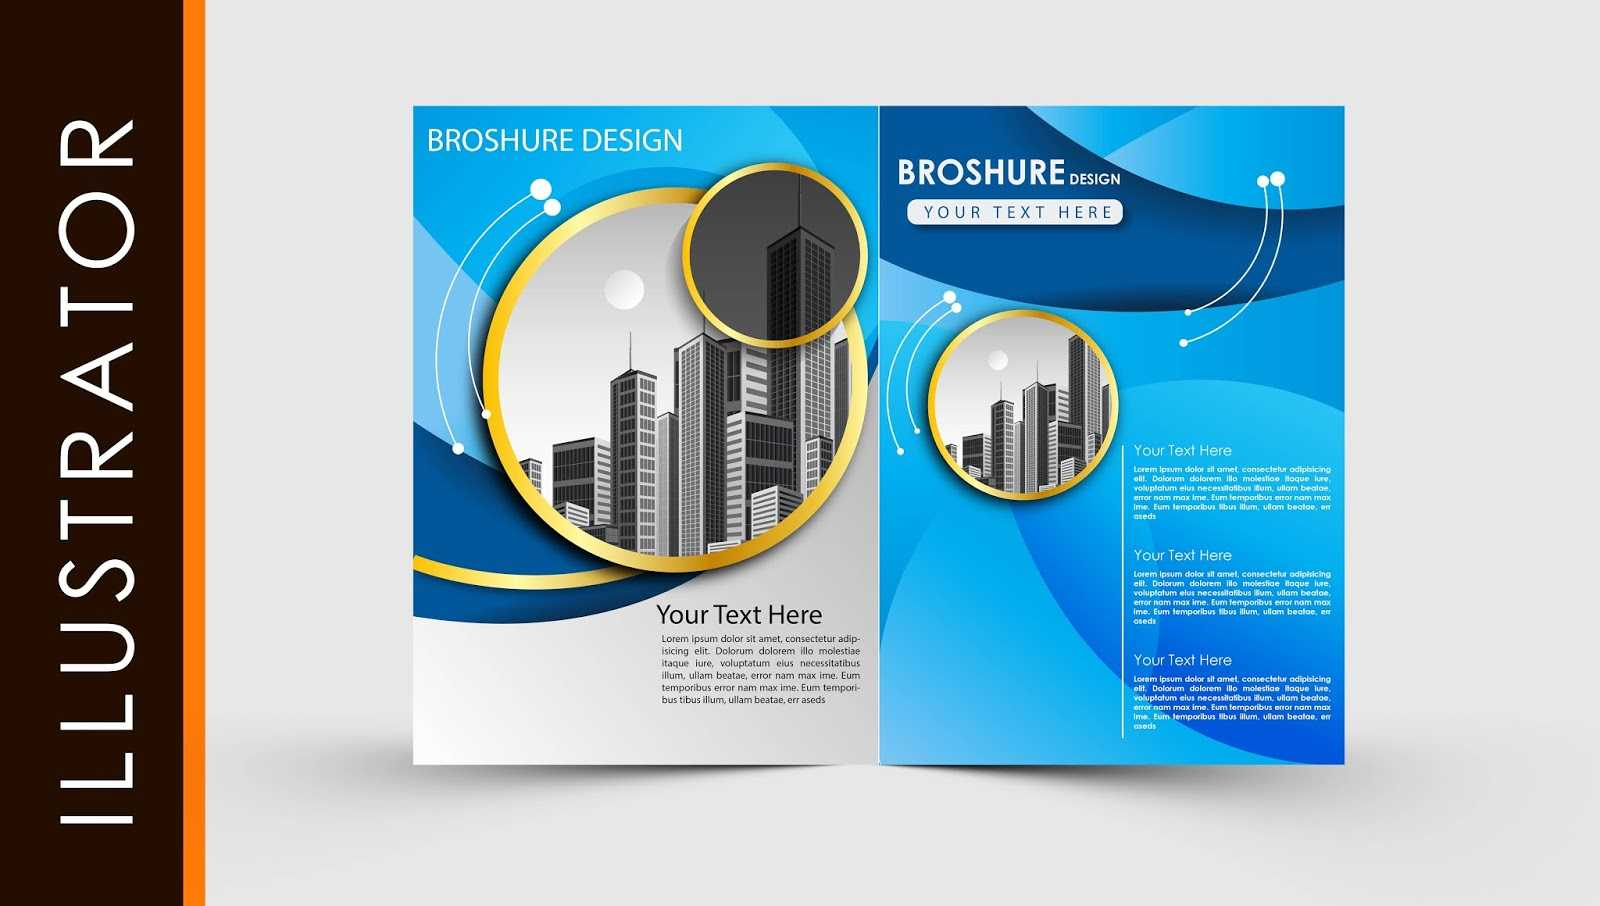 Free Download Adobe Illustrator Template Brochure Two Fold With Regard To Free Illustrator Brochure Templates Download